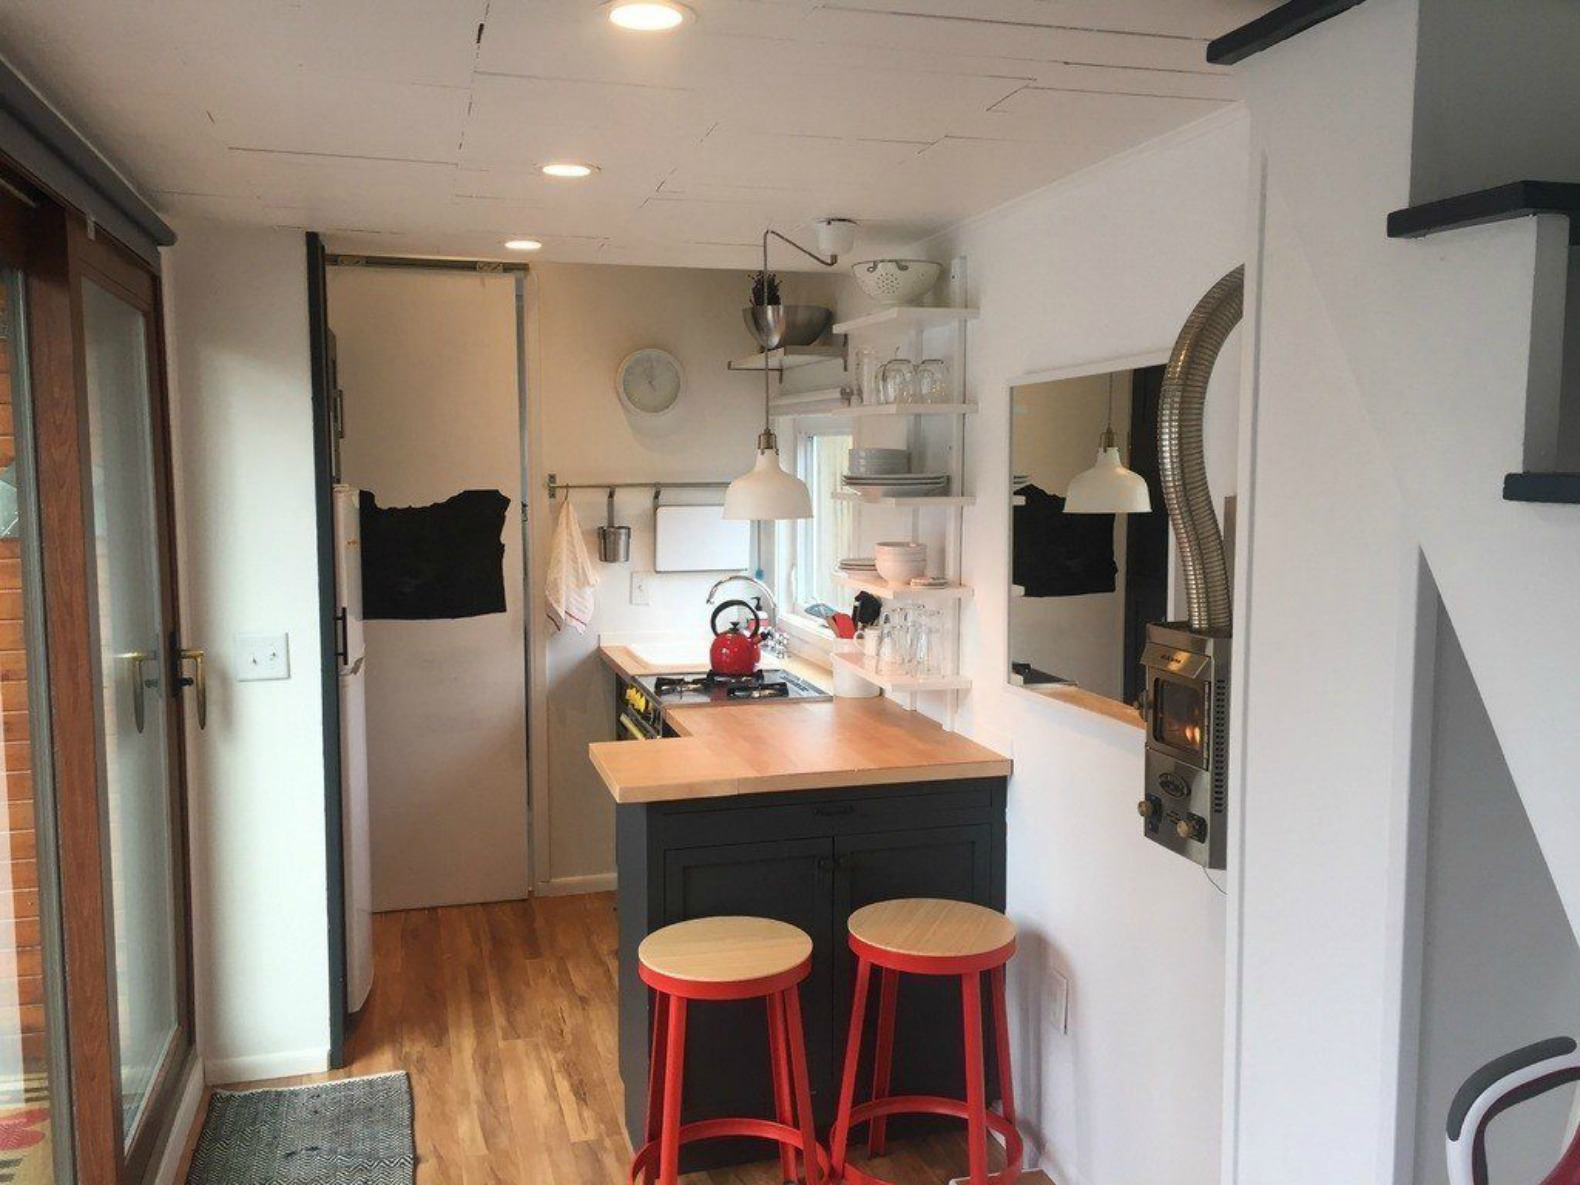 Tiny Home Designs: This Amazing Light-filled Tiny House Packs Big Style For